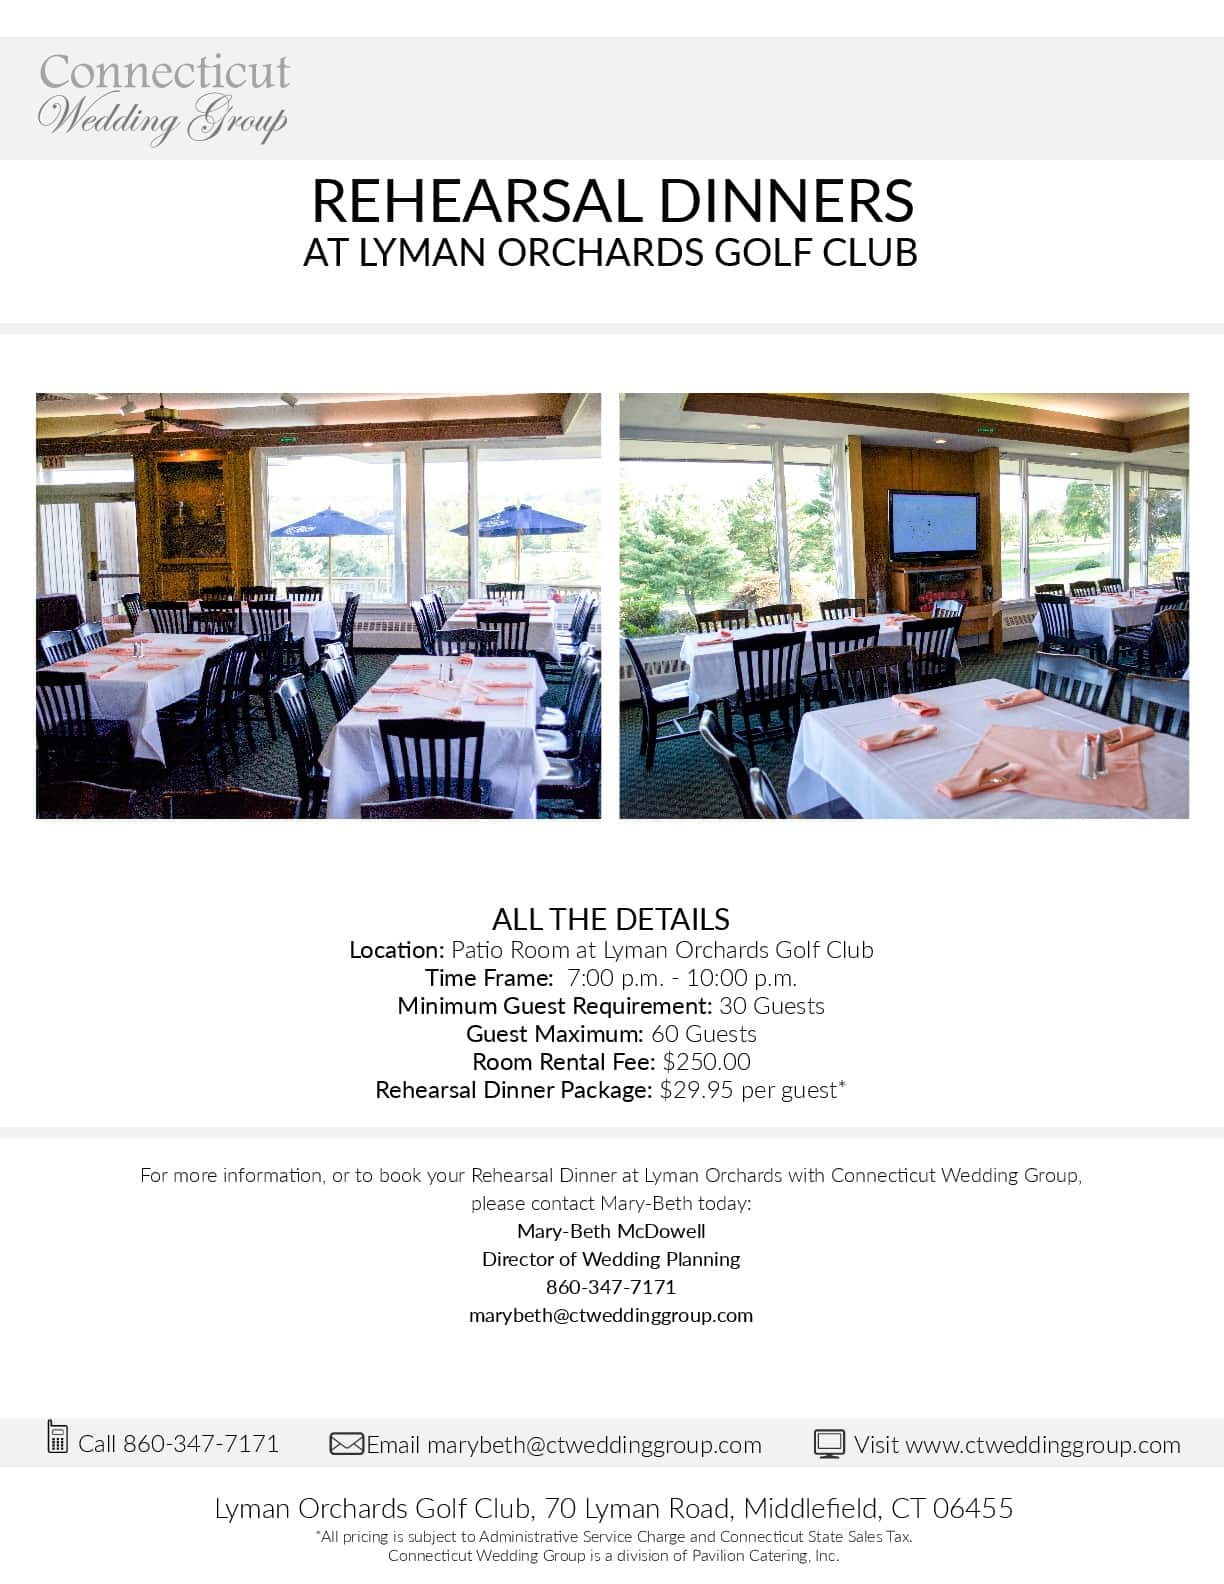 Lyman-Orchards-olf-Club-Rehearsal-Dinner-Menu-01-001